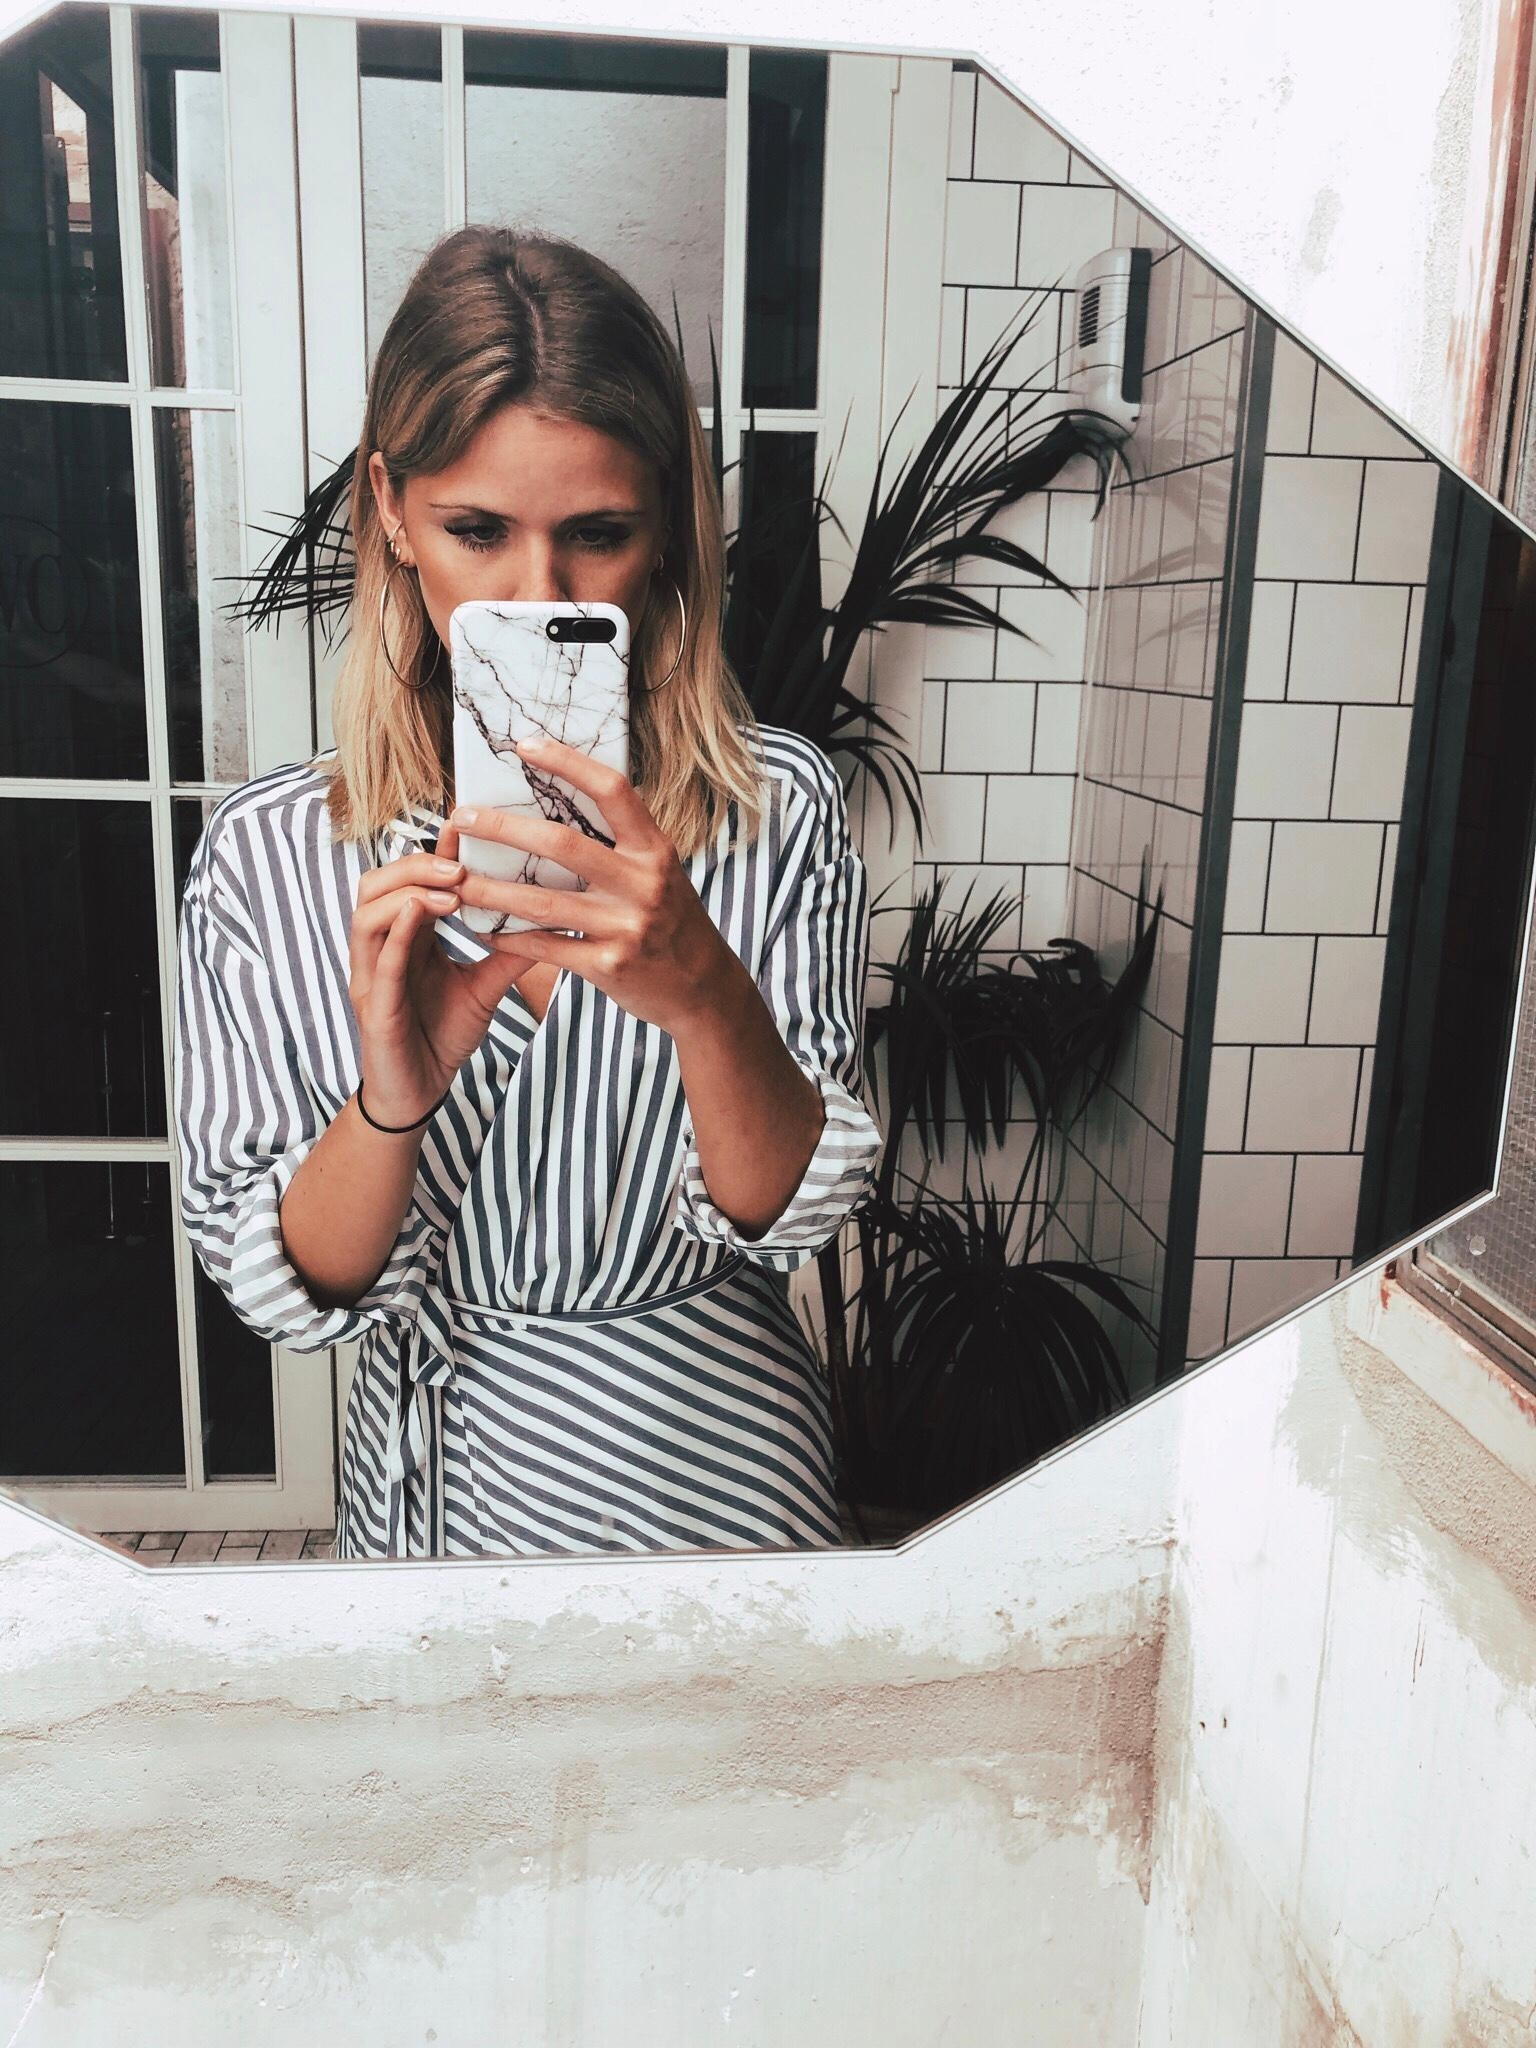 Marble and stripes #bathroomselfie #stripes #dress #style